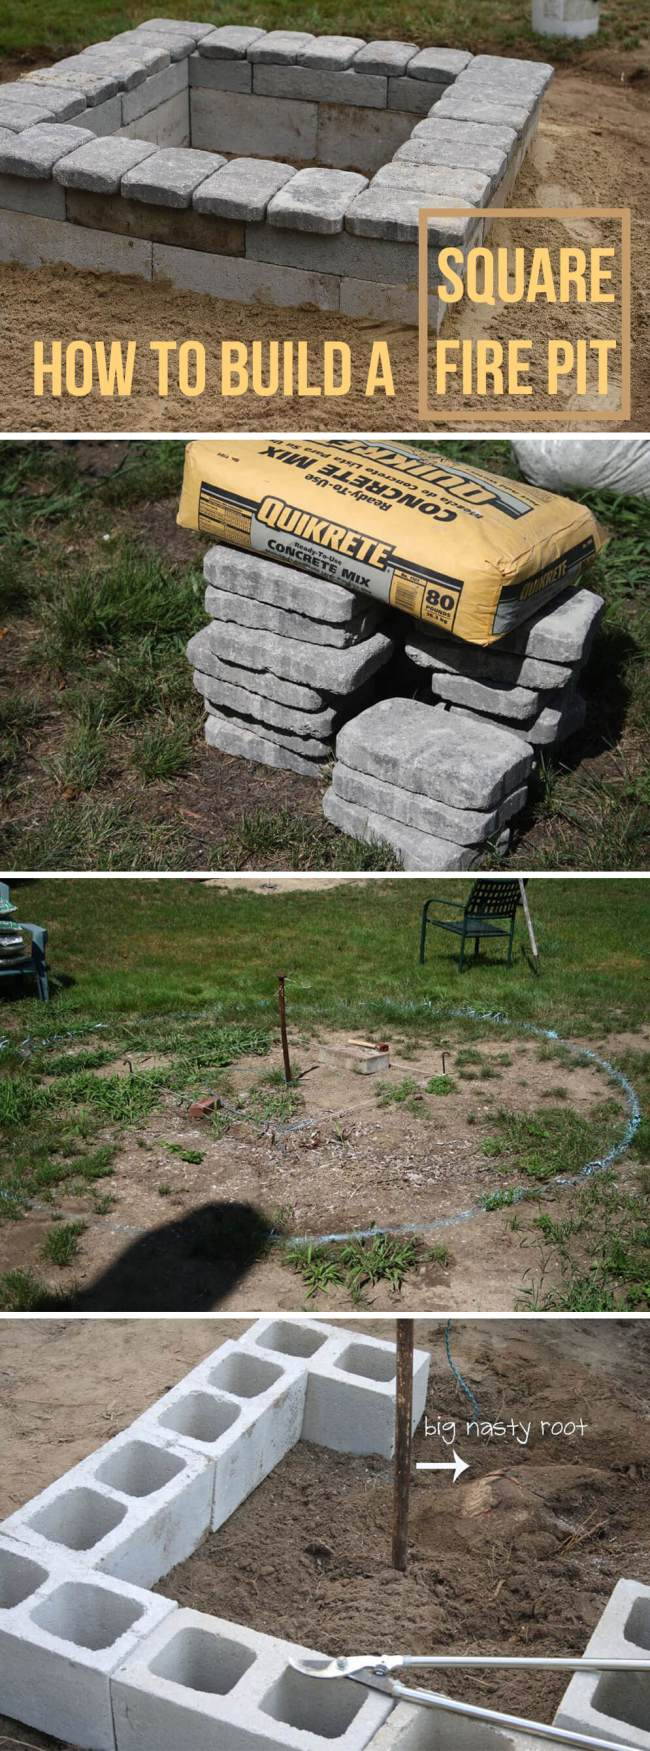 outdoor DIY fire pit ideas designs how to build the handy mano manomano blocks stone